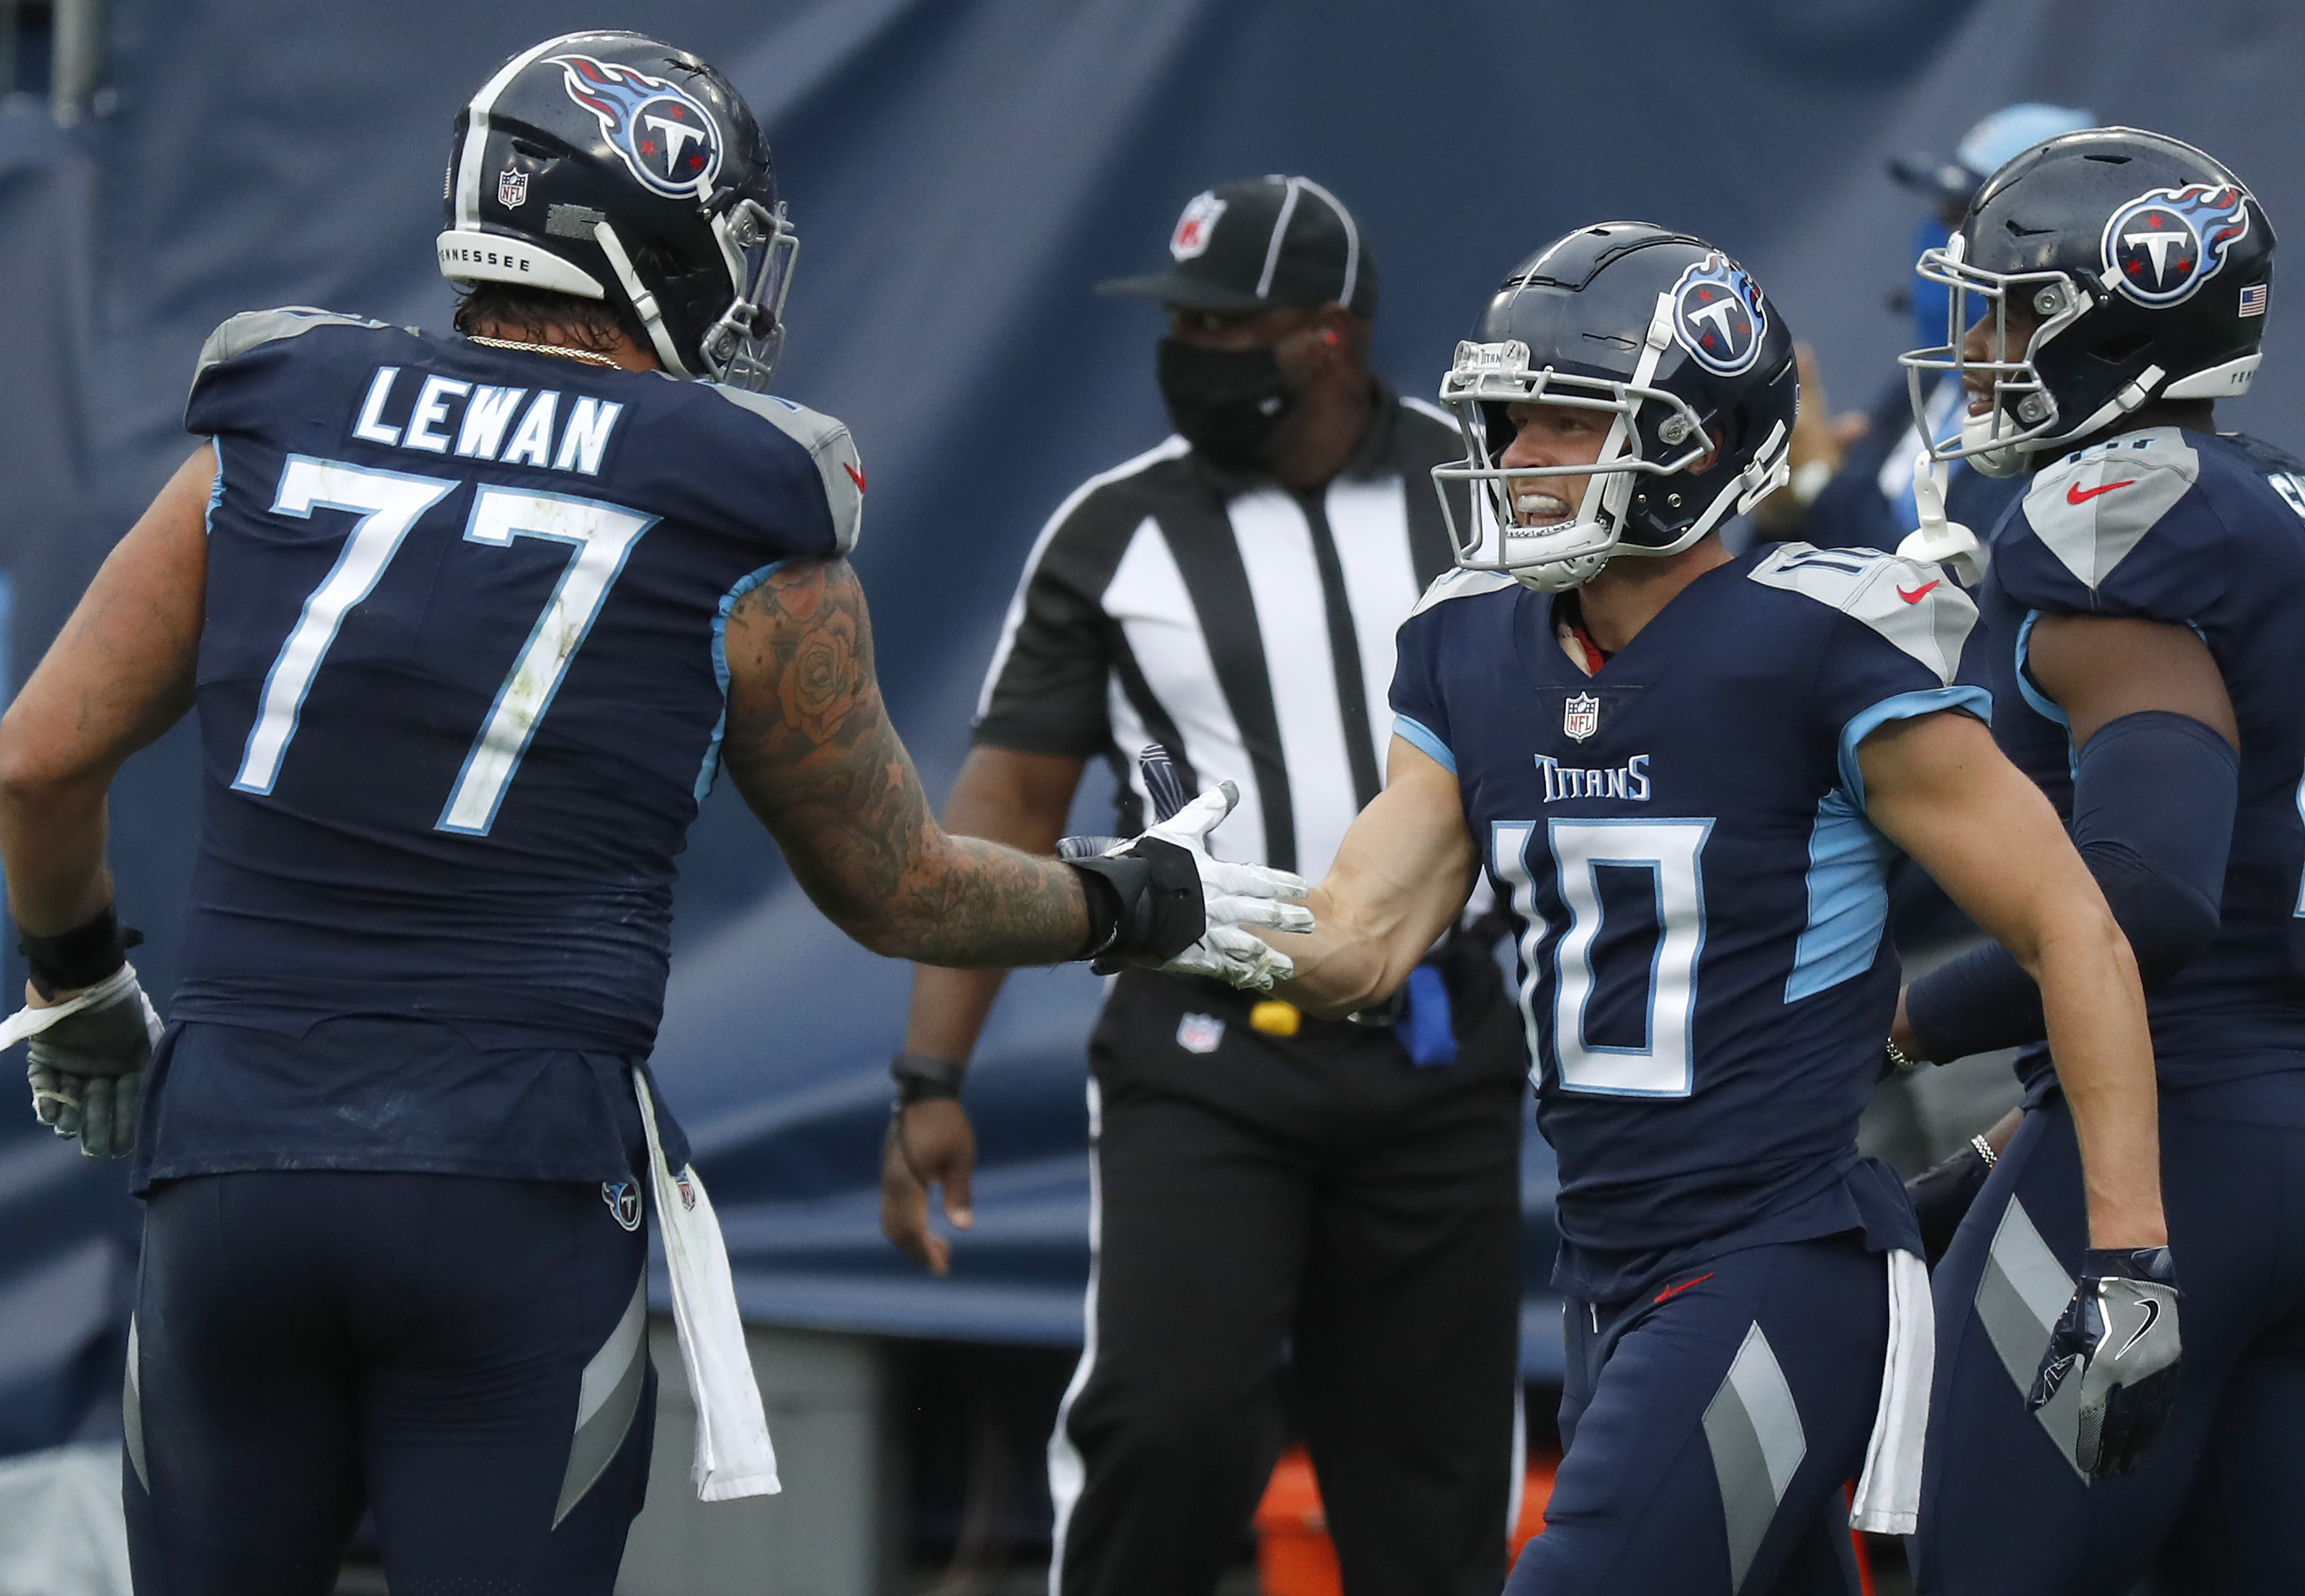 Injured Taylor Lewan Has an Emotional Message for Tennessee Titans Fans